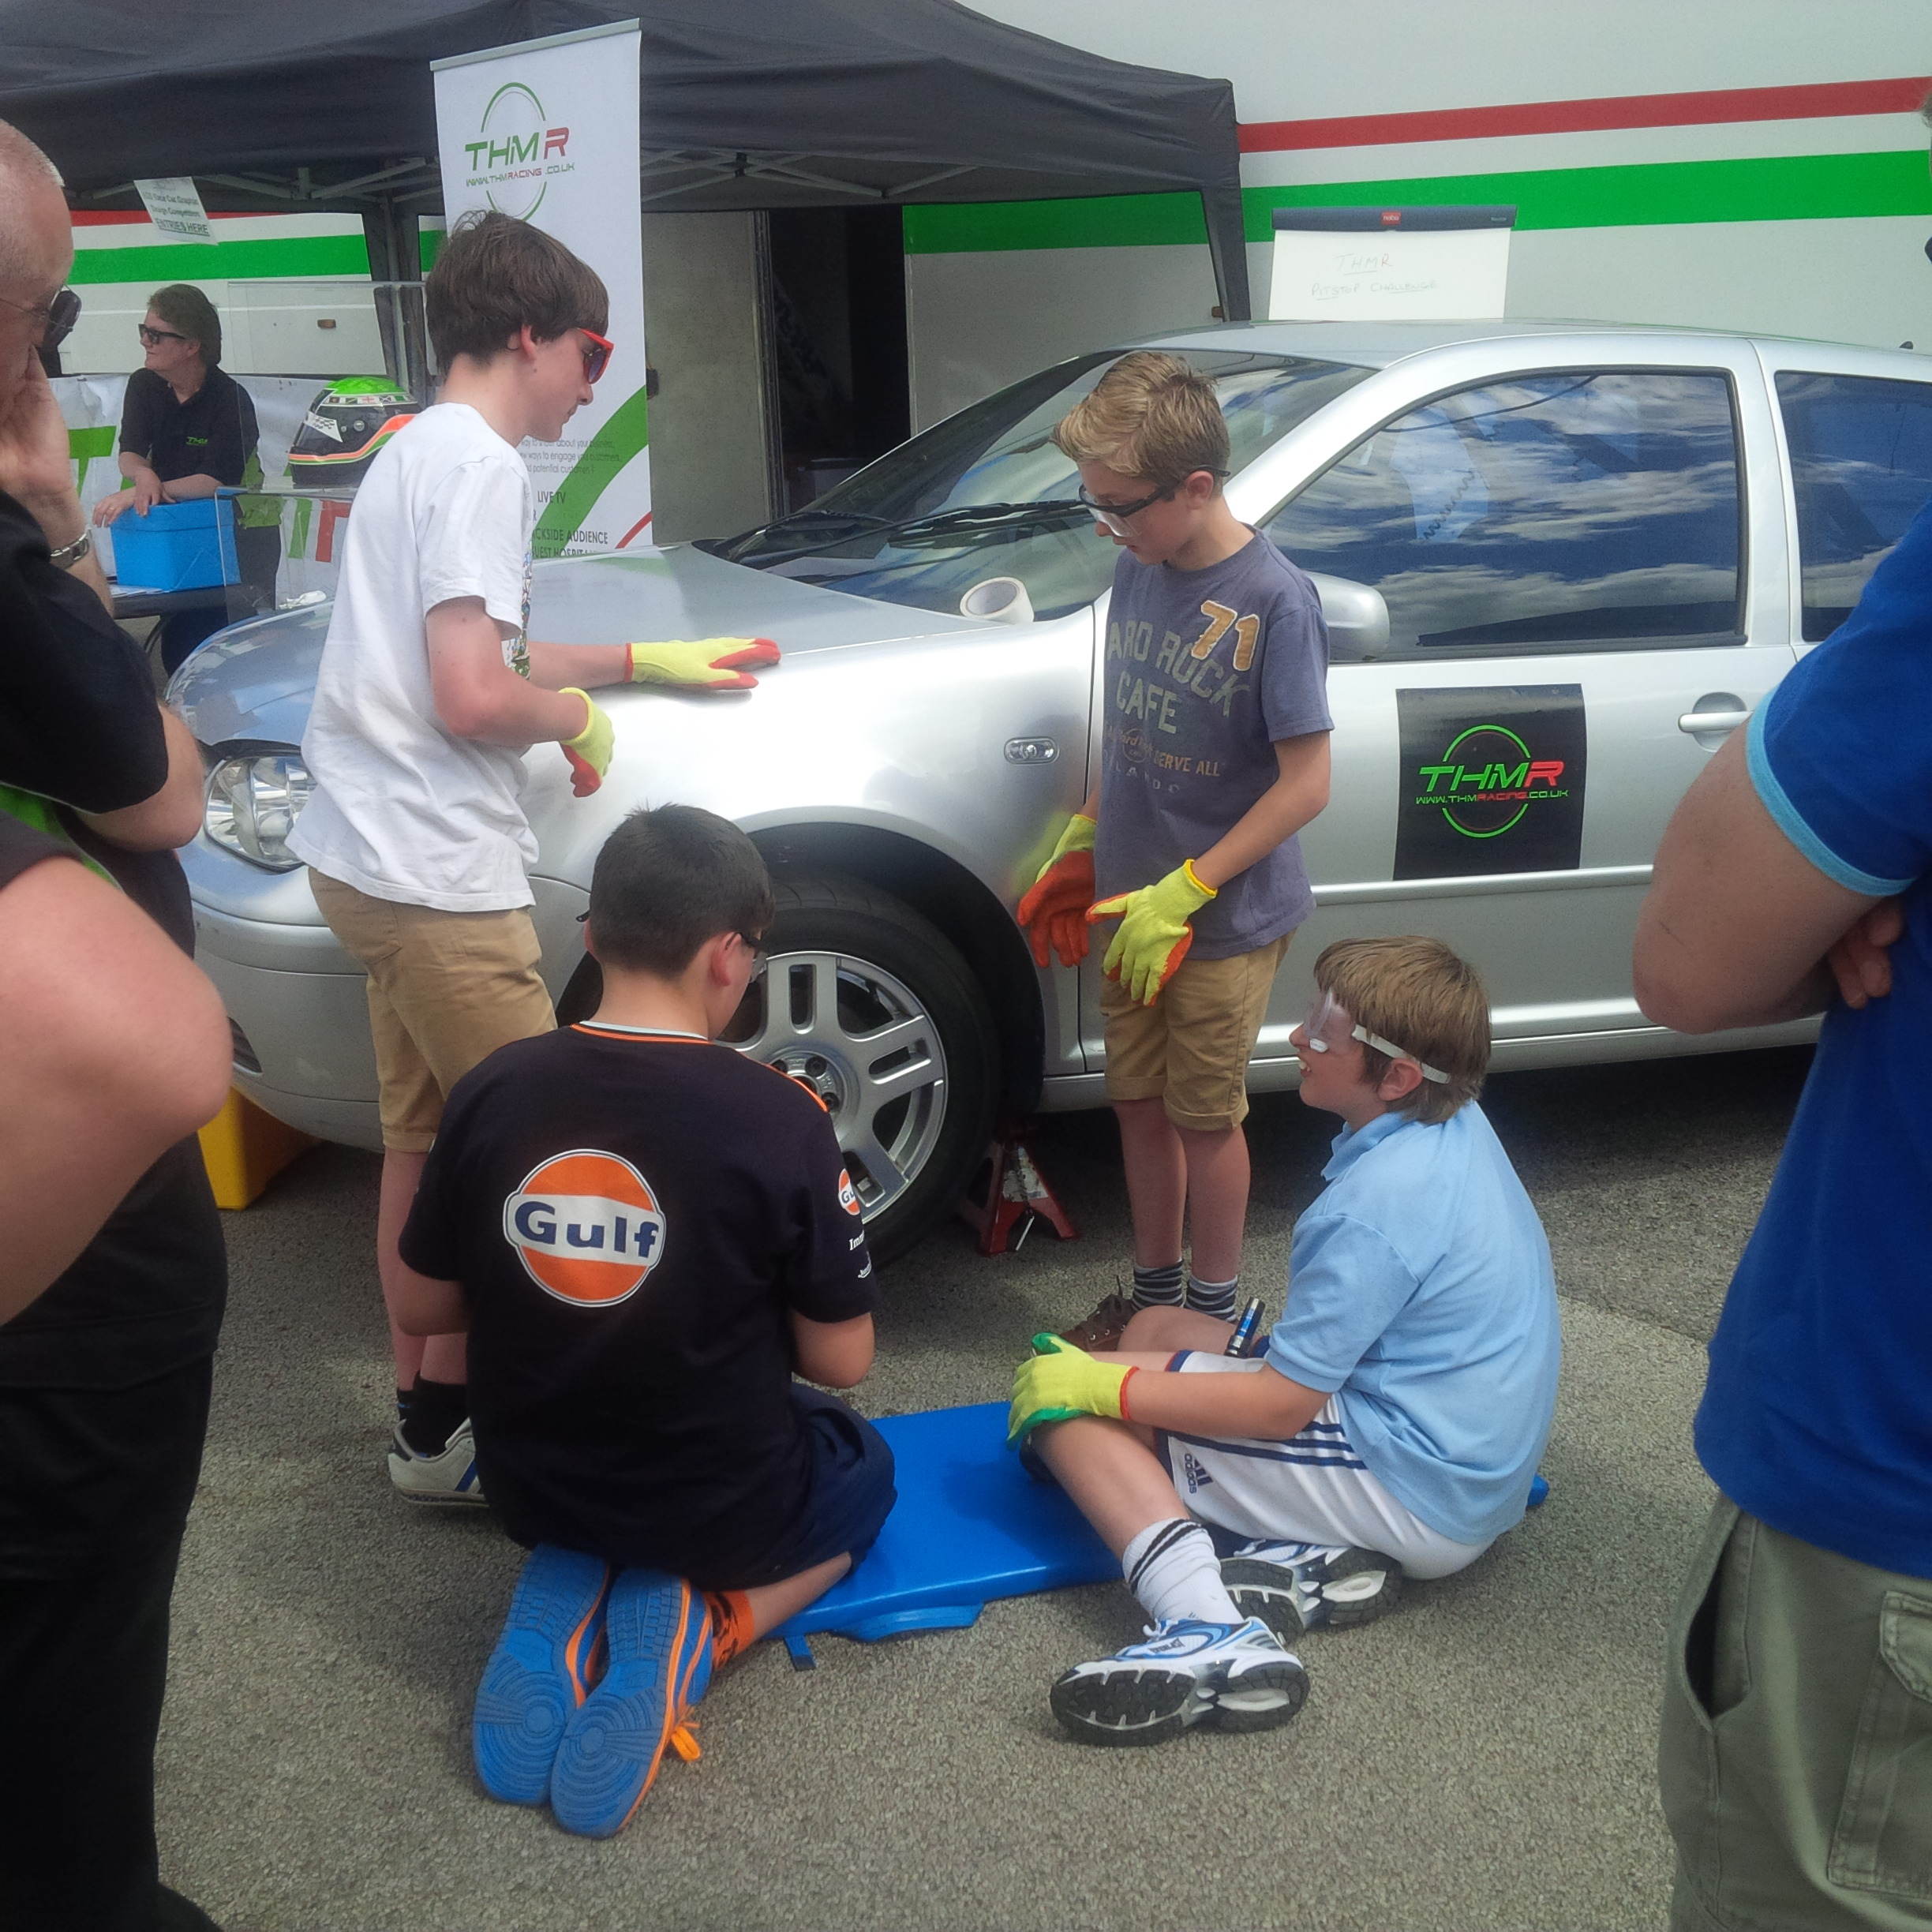 THM Racing Pit Stop Challenge at AGS